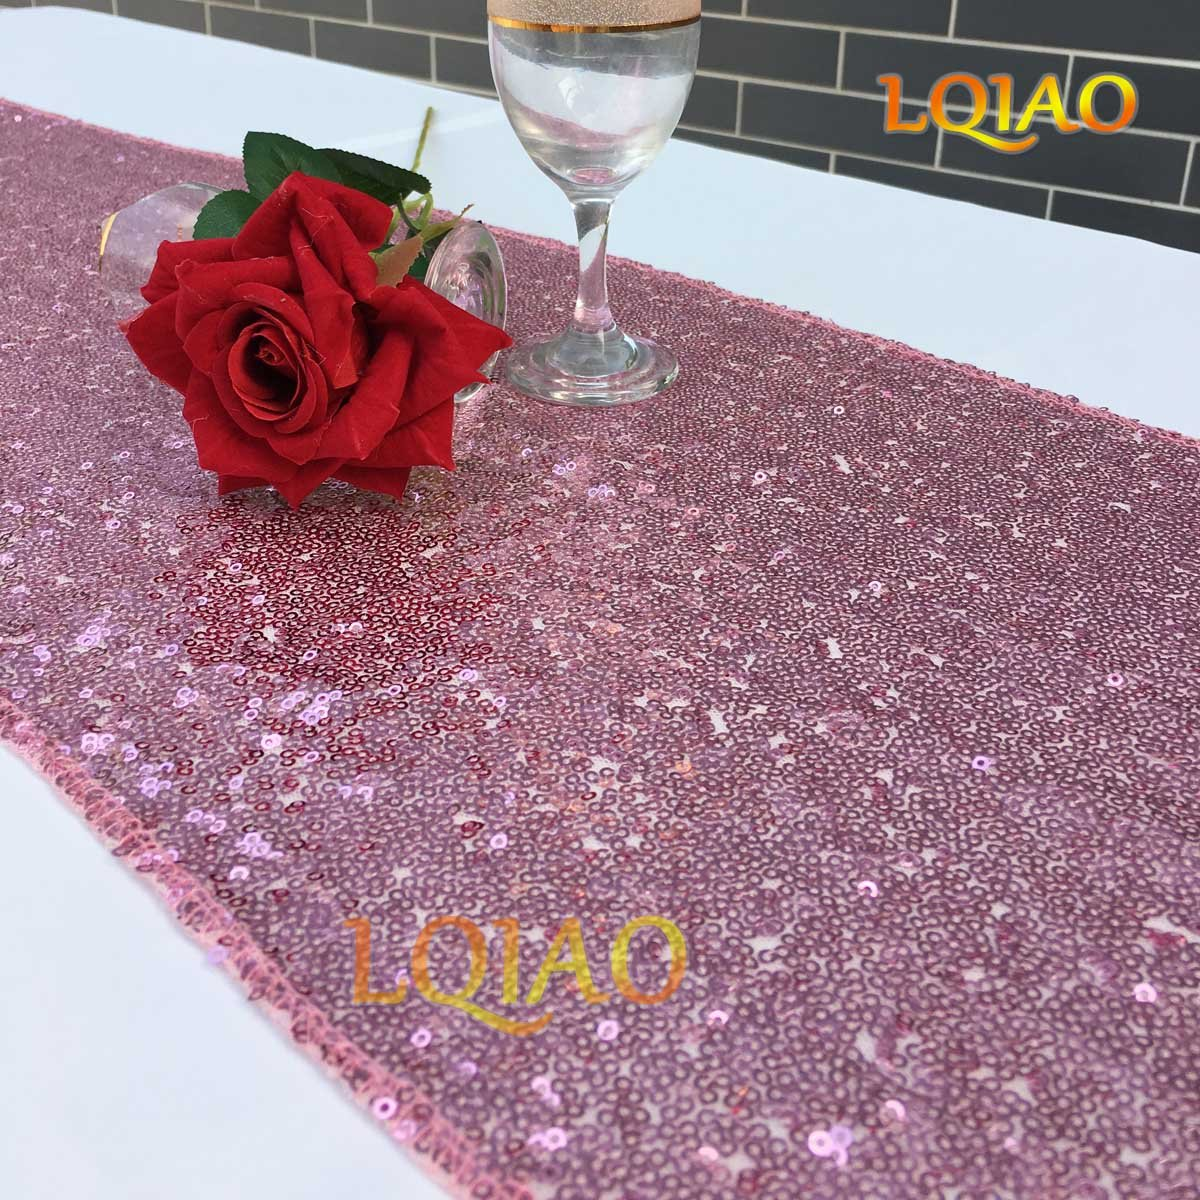 LQIAO Sequin Table Runner Pink Gold 12x108-in, Factory Best Sparkly Table Runner High End Party/Wedding/Christmas Decoration, Pack of 20 PCS by LQIAO